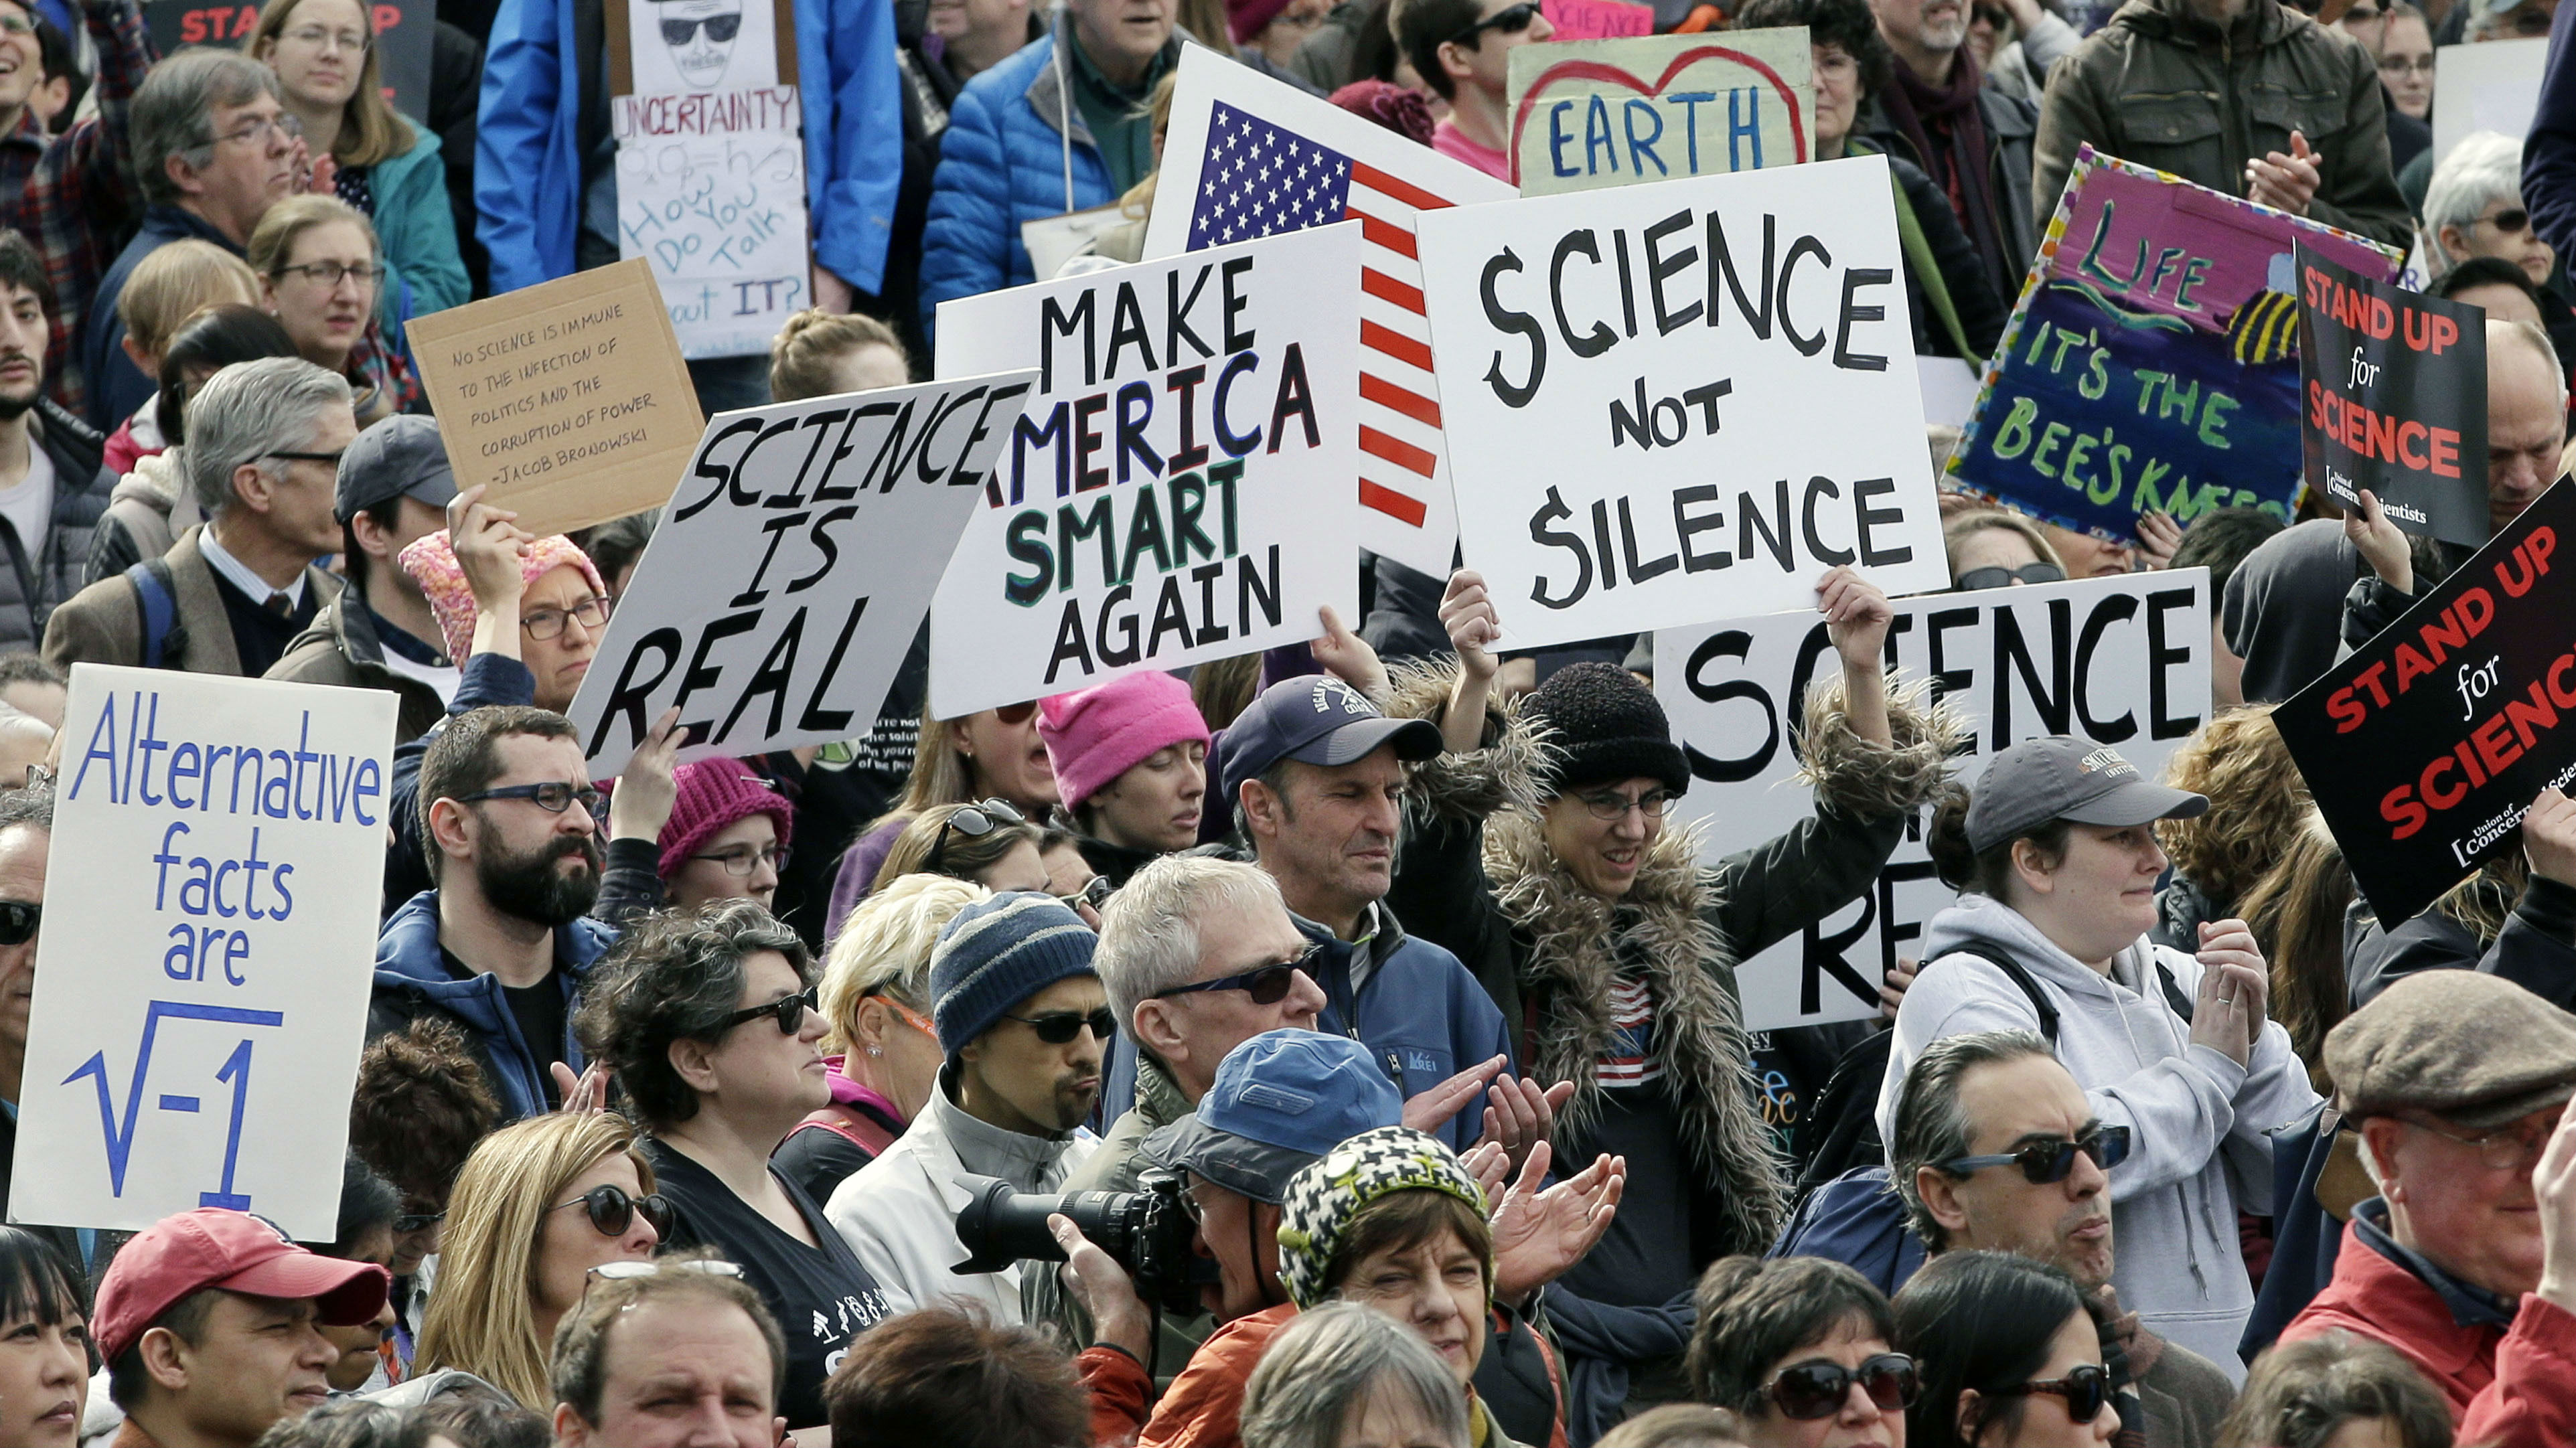 Protestors at a rally for science in Boston.